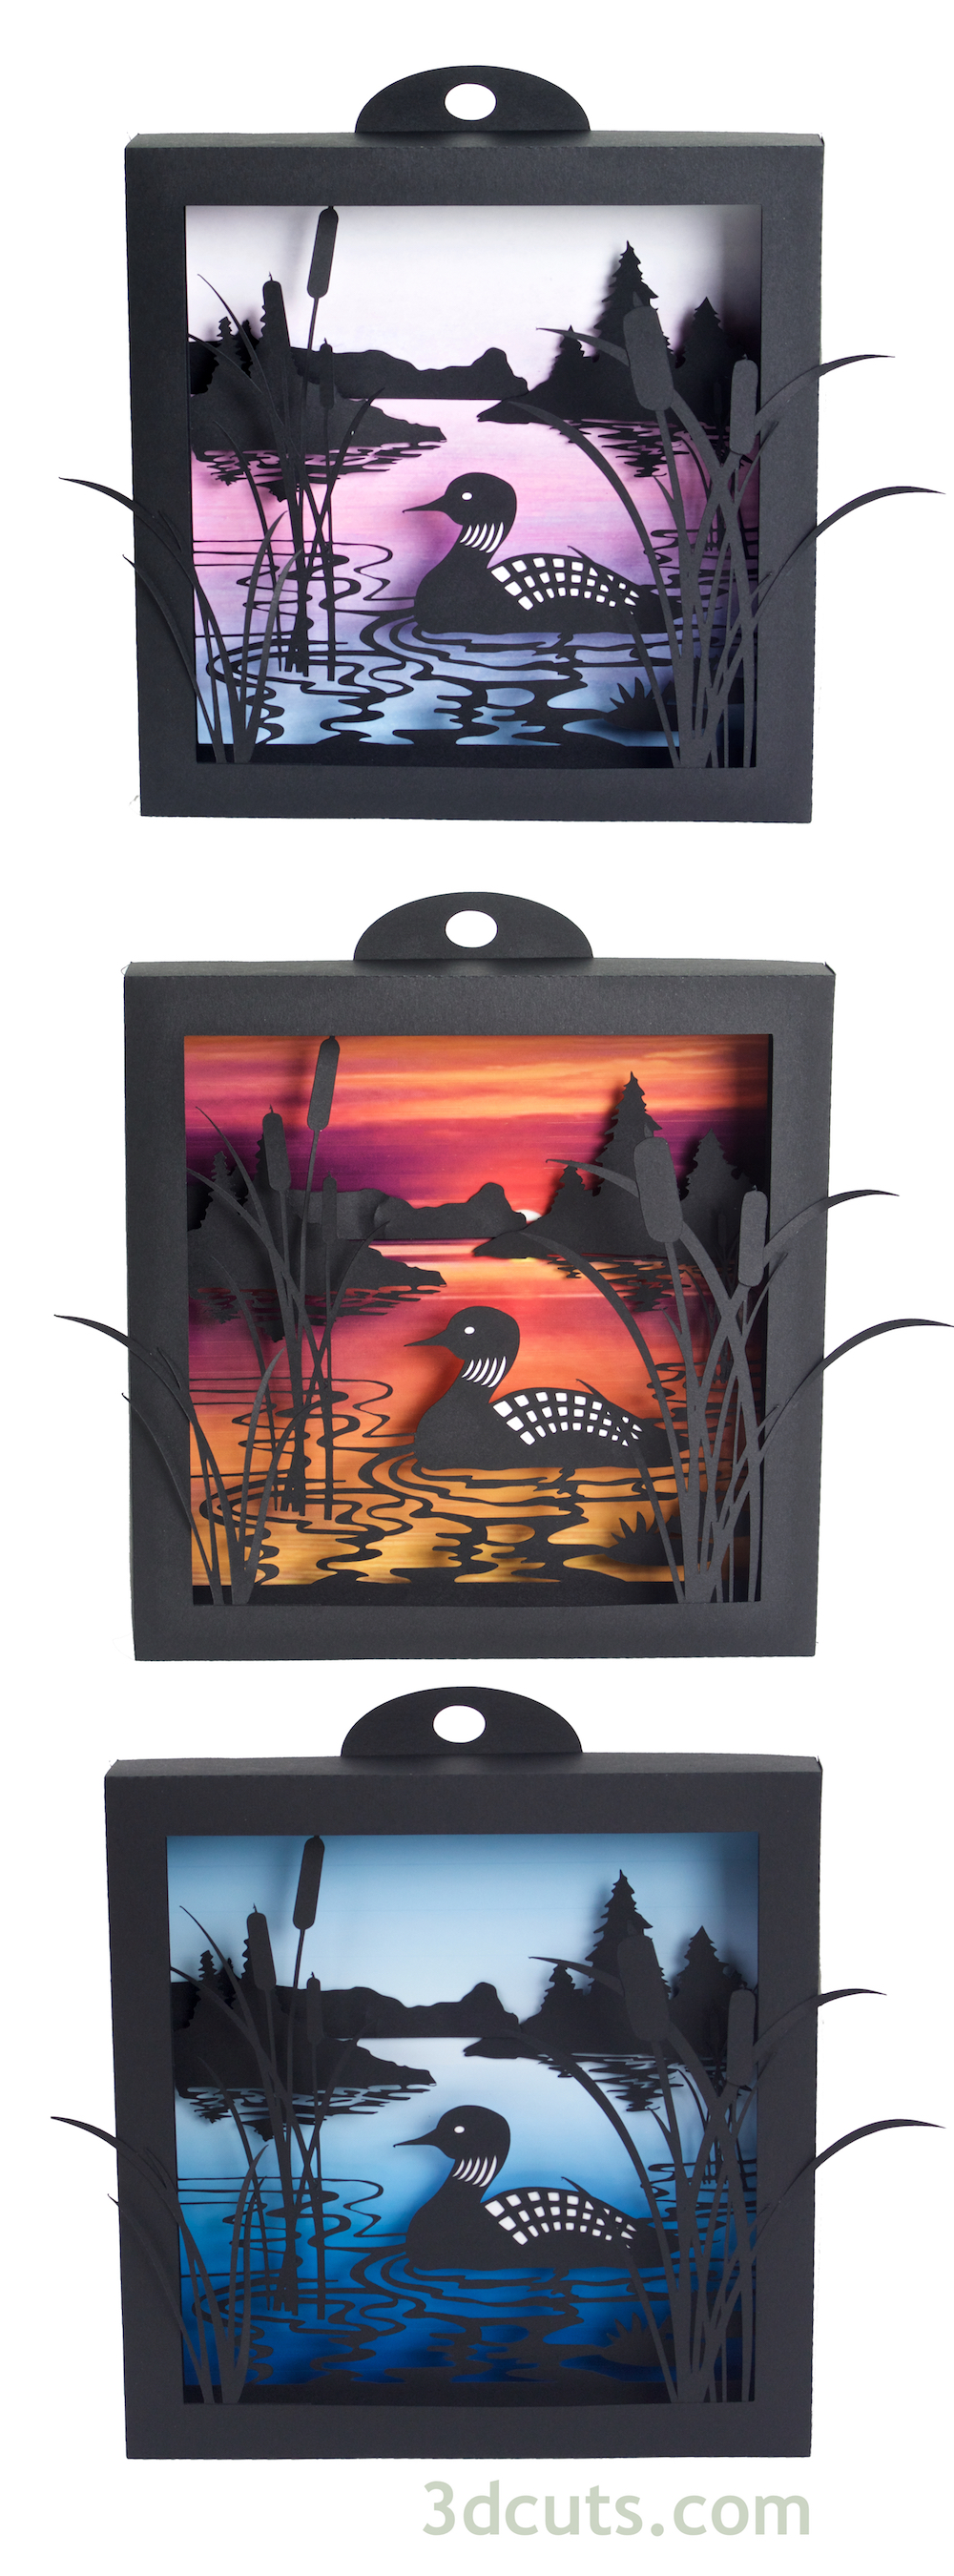 Loon Lake Shadow box with 3 backgrounds crafted in paper. SVG files available at 3dcuts.com. For use with Cricut and Silhouette cutting machines.